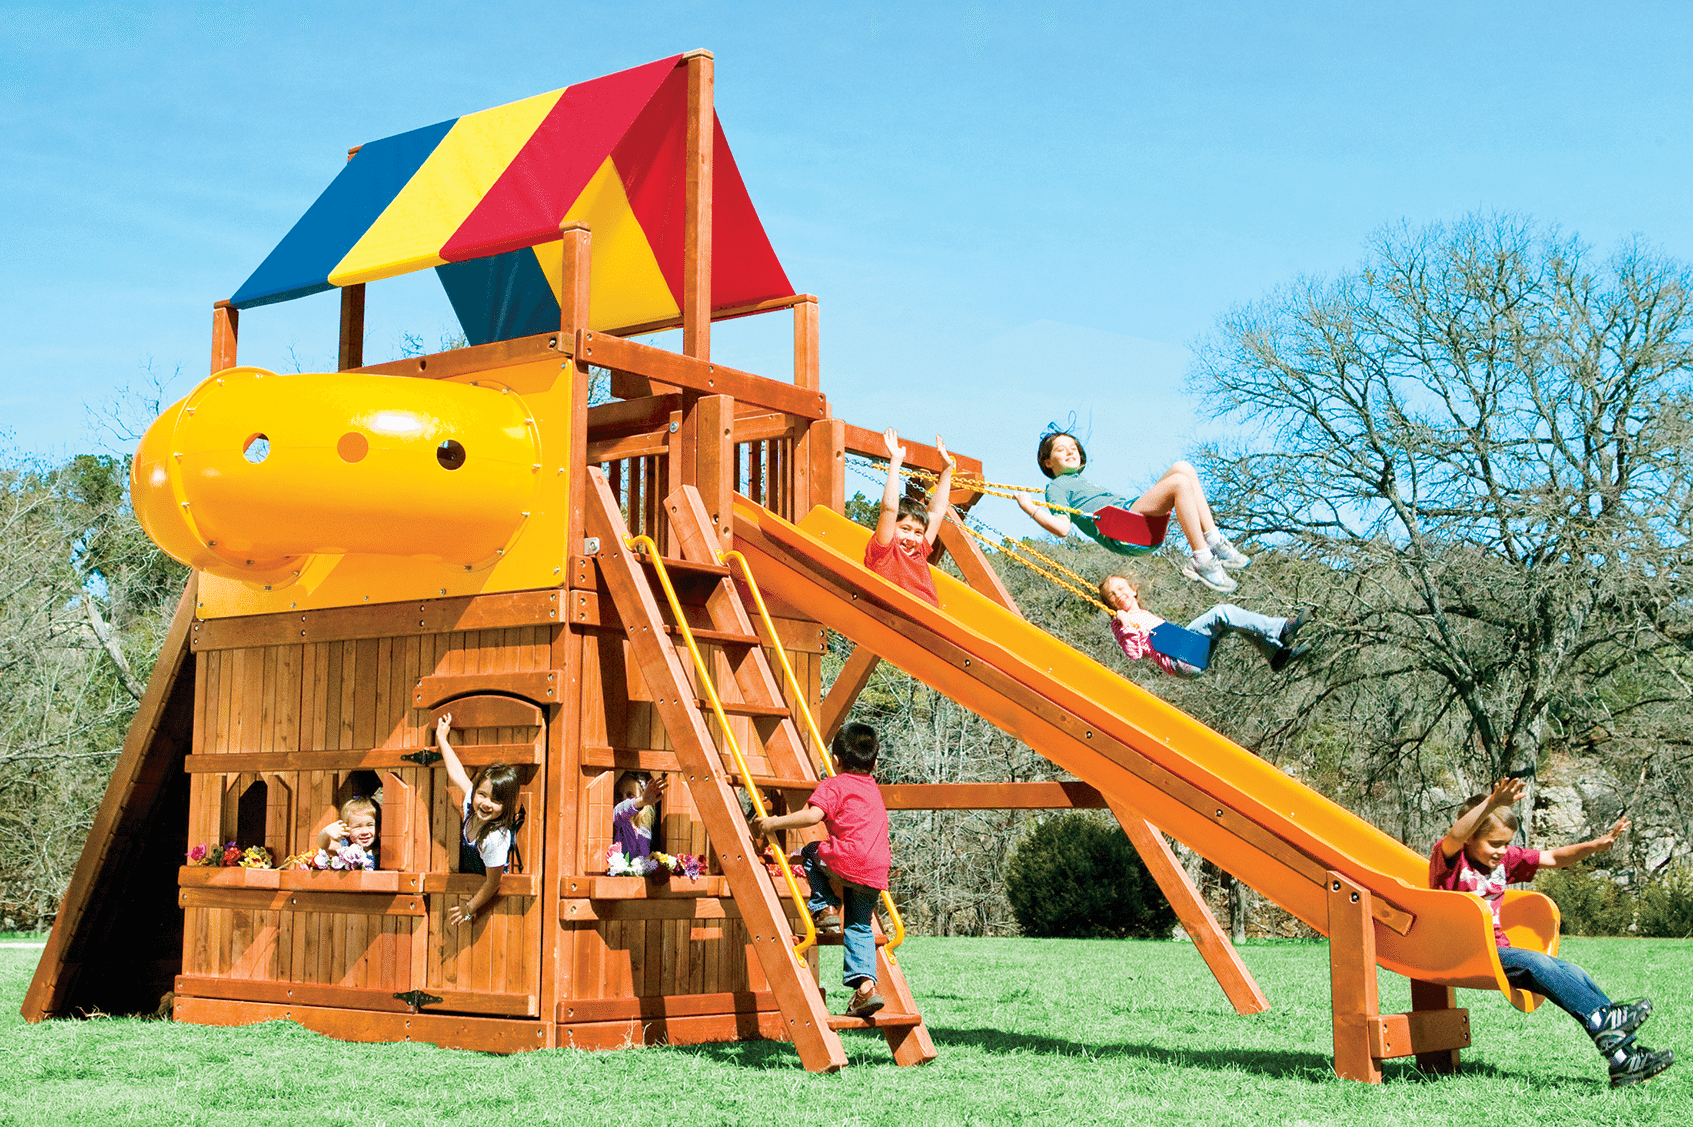 Castle Outdoor Swing Sets | Rainbow play systems, Club house